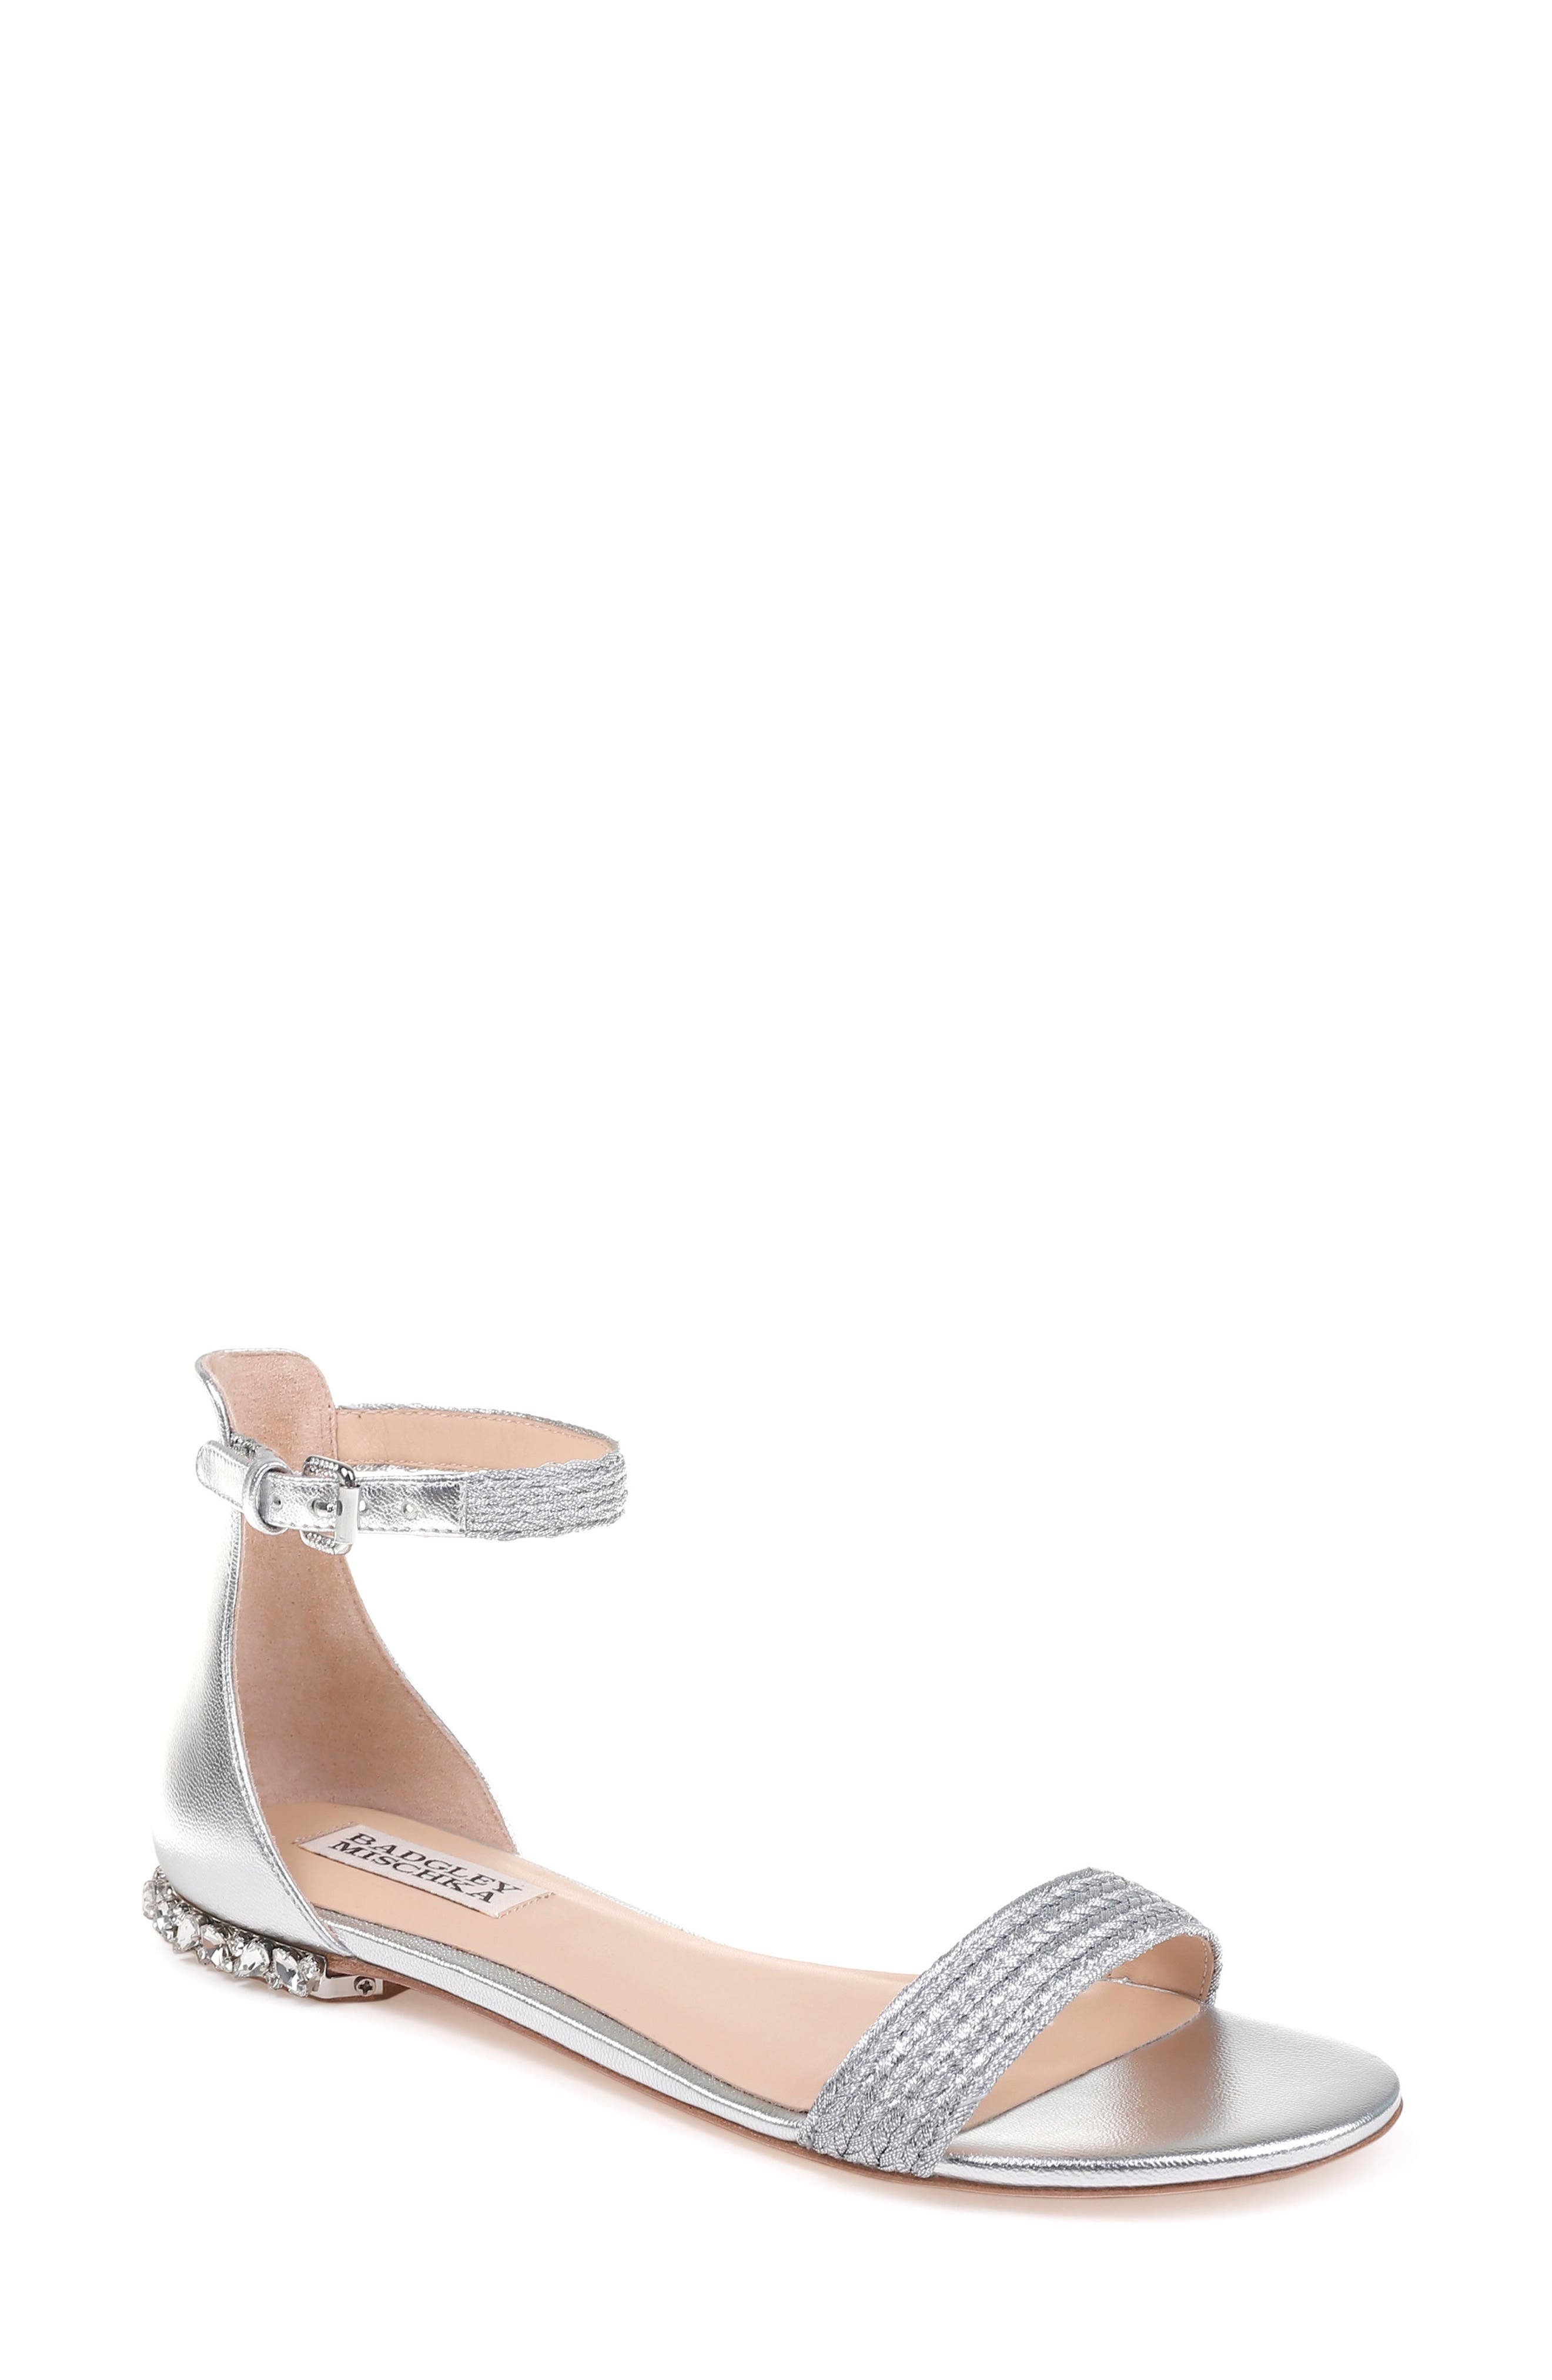 Steffie Ankle Strap Sandal,                         Main,                         color, Silver Leather